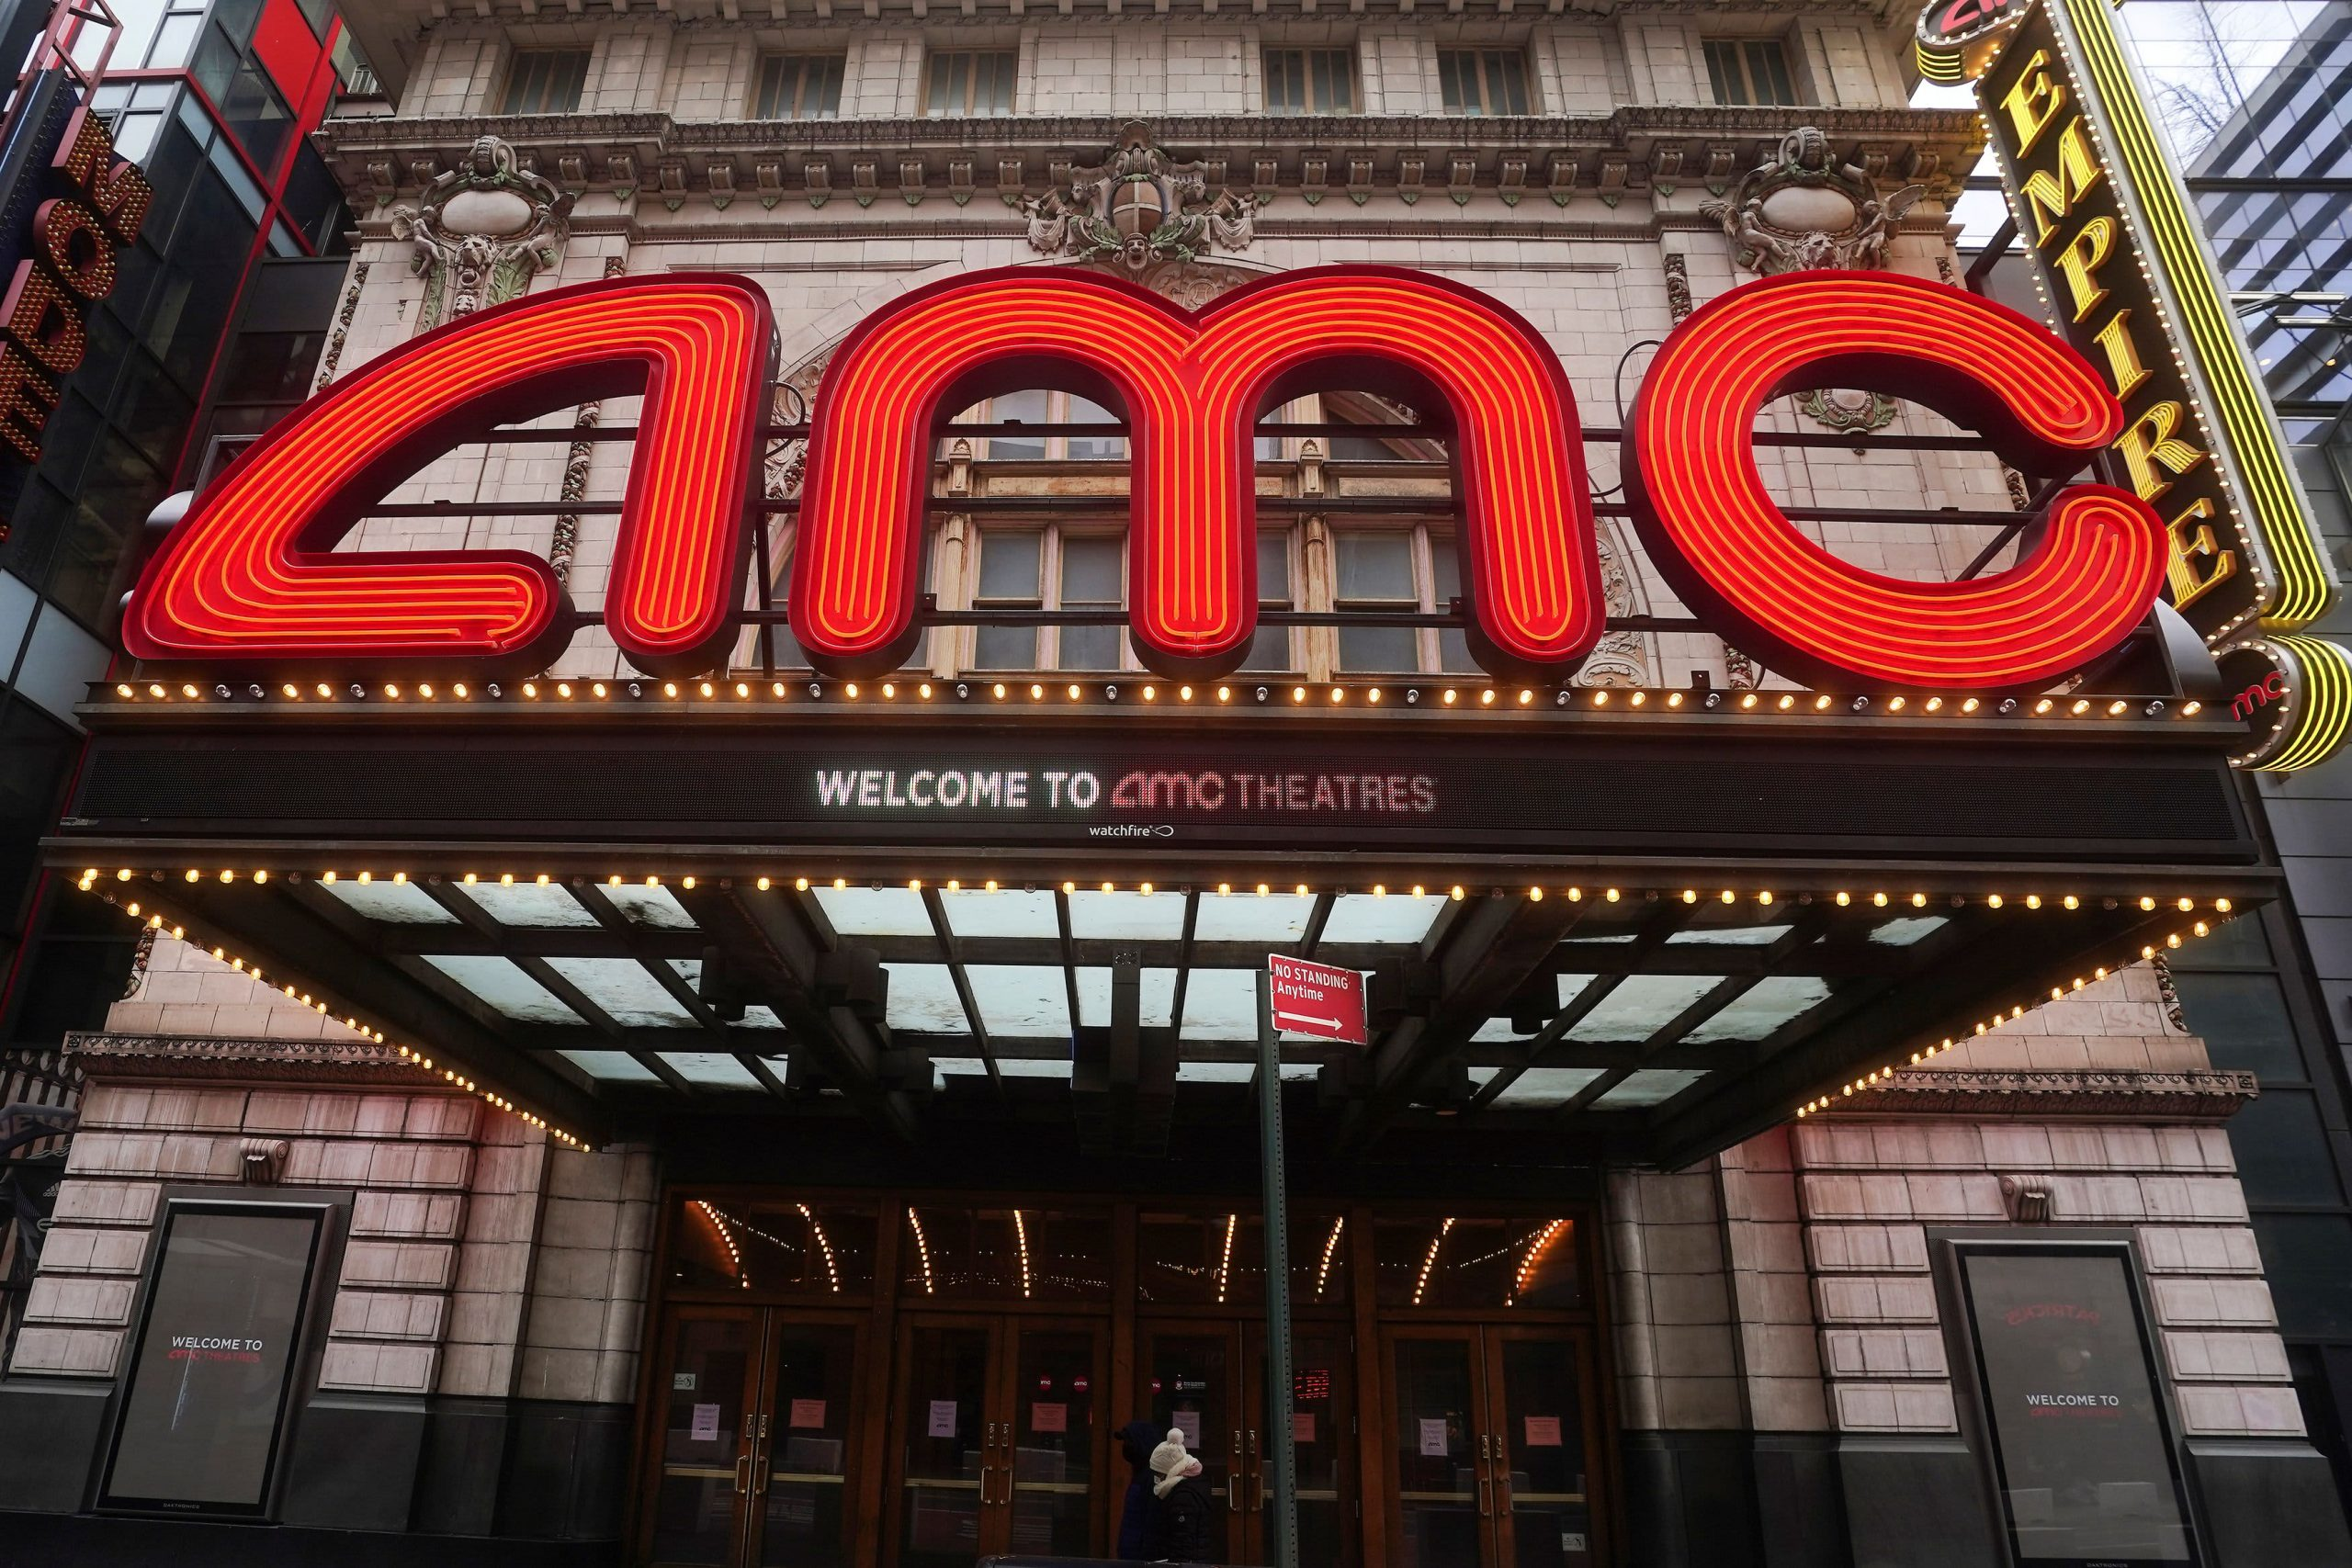 AMC stock erases a 38% rally and turns red in wild trading, but ends the week up 116%